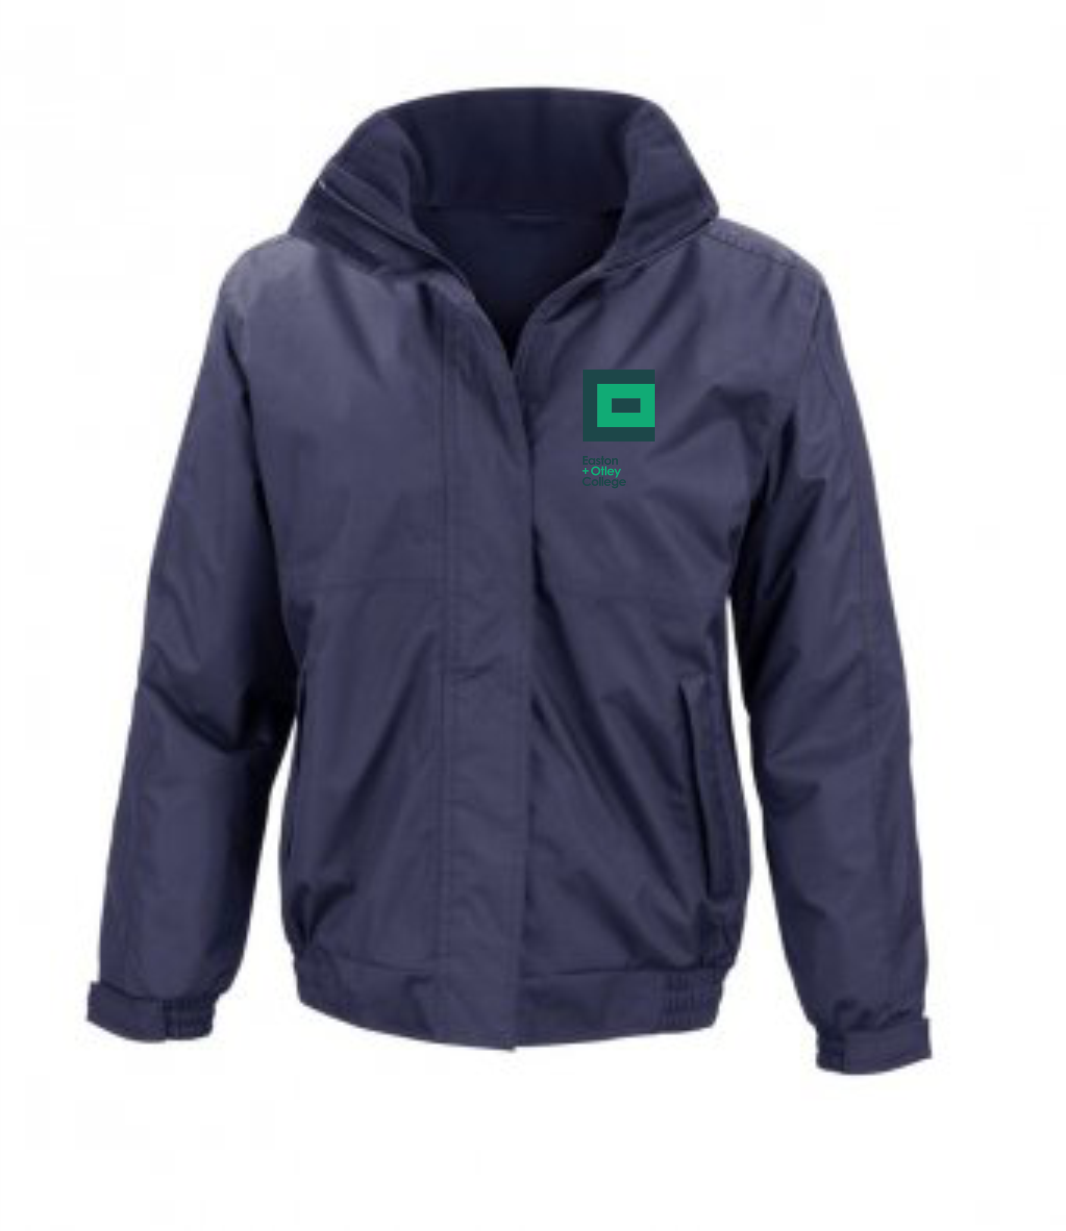 Easton Equine Ladies Jacket